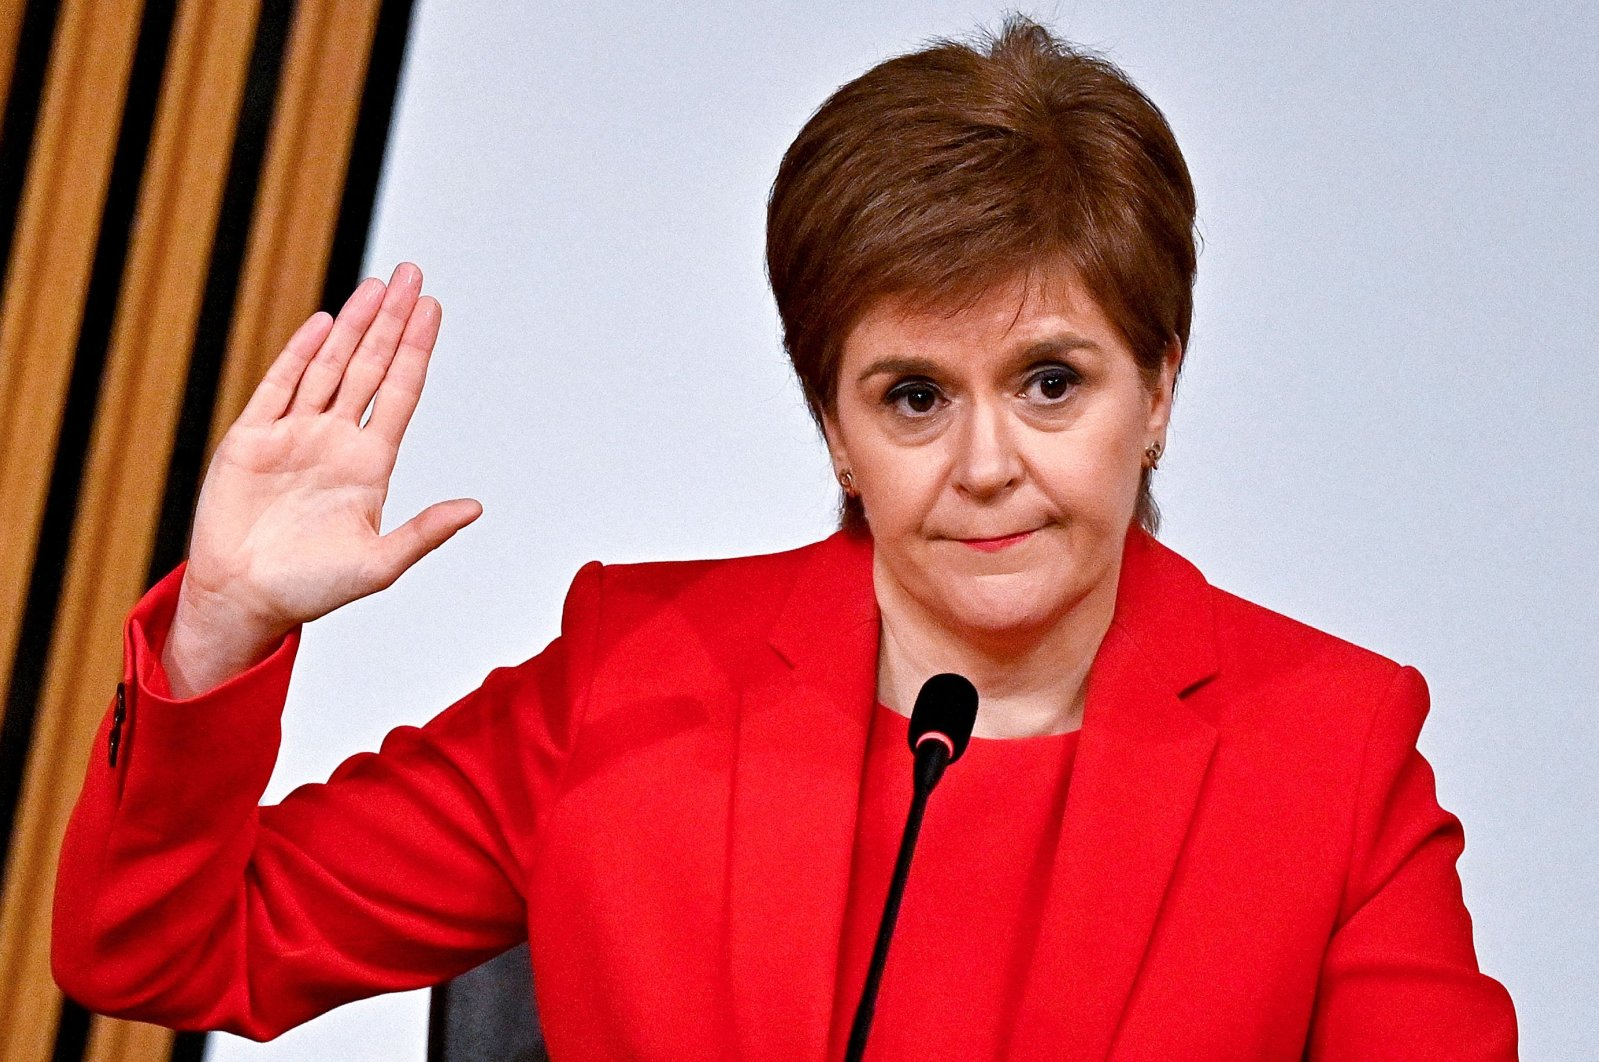 Scotland's First Minister Nicola Sturgeon is sworn in before giving evidence to The Committee on the Scottish Government Handling of Harassment Complaints at Holyrood in Edinburgh, examining the government's handling of harassment allegations against Former Scottish National Party leader and former First Minister of Scotland, Alex Salmond on March 3, 2021. (AFP Photo)